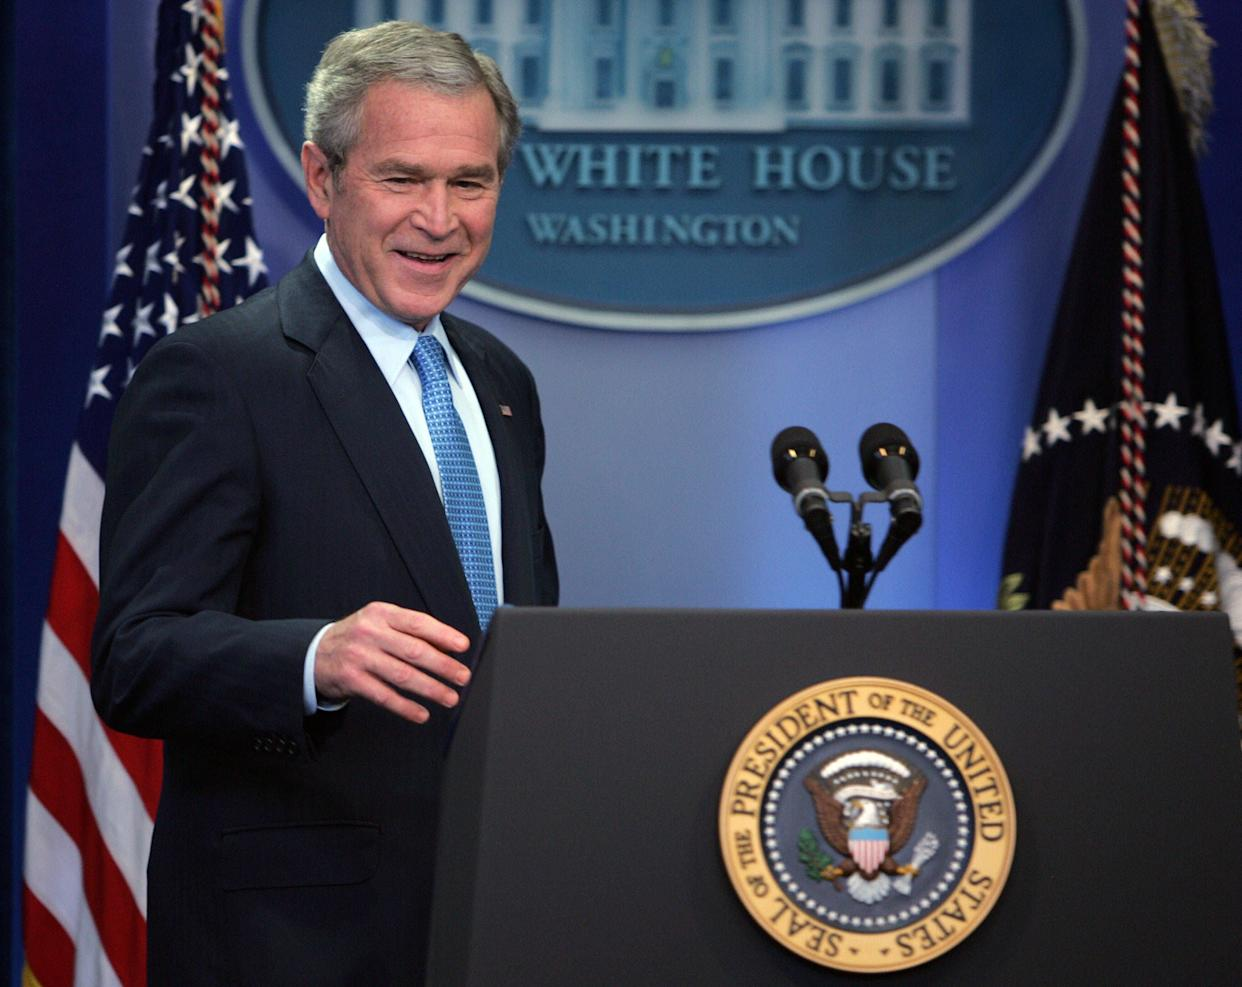 """<strong>""""Mr. Prime Minister, thank you for your introduction. Thank you for being such a fine host for the OPEC summit."""" </strong> -- September 2007, in Sydney, Australia, where Bush was attending an APEC summit. <a href=""""http://www.huffingtonpost.com/2009/01/03/bushisms-over-the-years_n_154969.html"""" rel=""""nofollow noopener"""" target=""""_blank"""" data-ylk=""""slk:Source: The Associated Press"""" class=""""link rapid-noclick-resp"""">Source: The Associated Press</a> (TIM SLOAN/AFP/Getty Images)"""